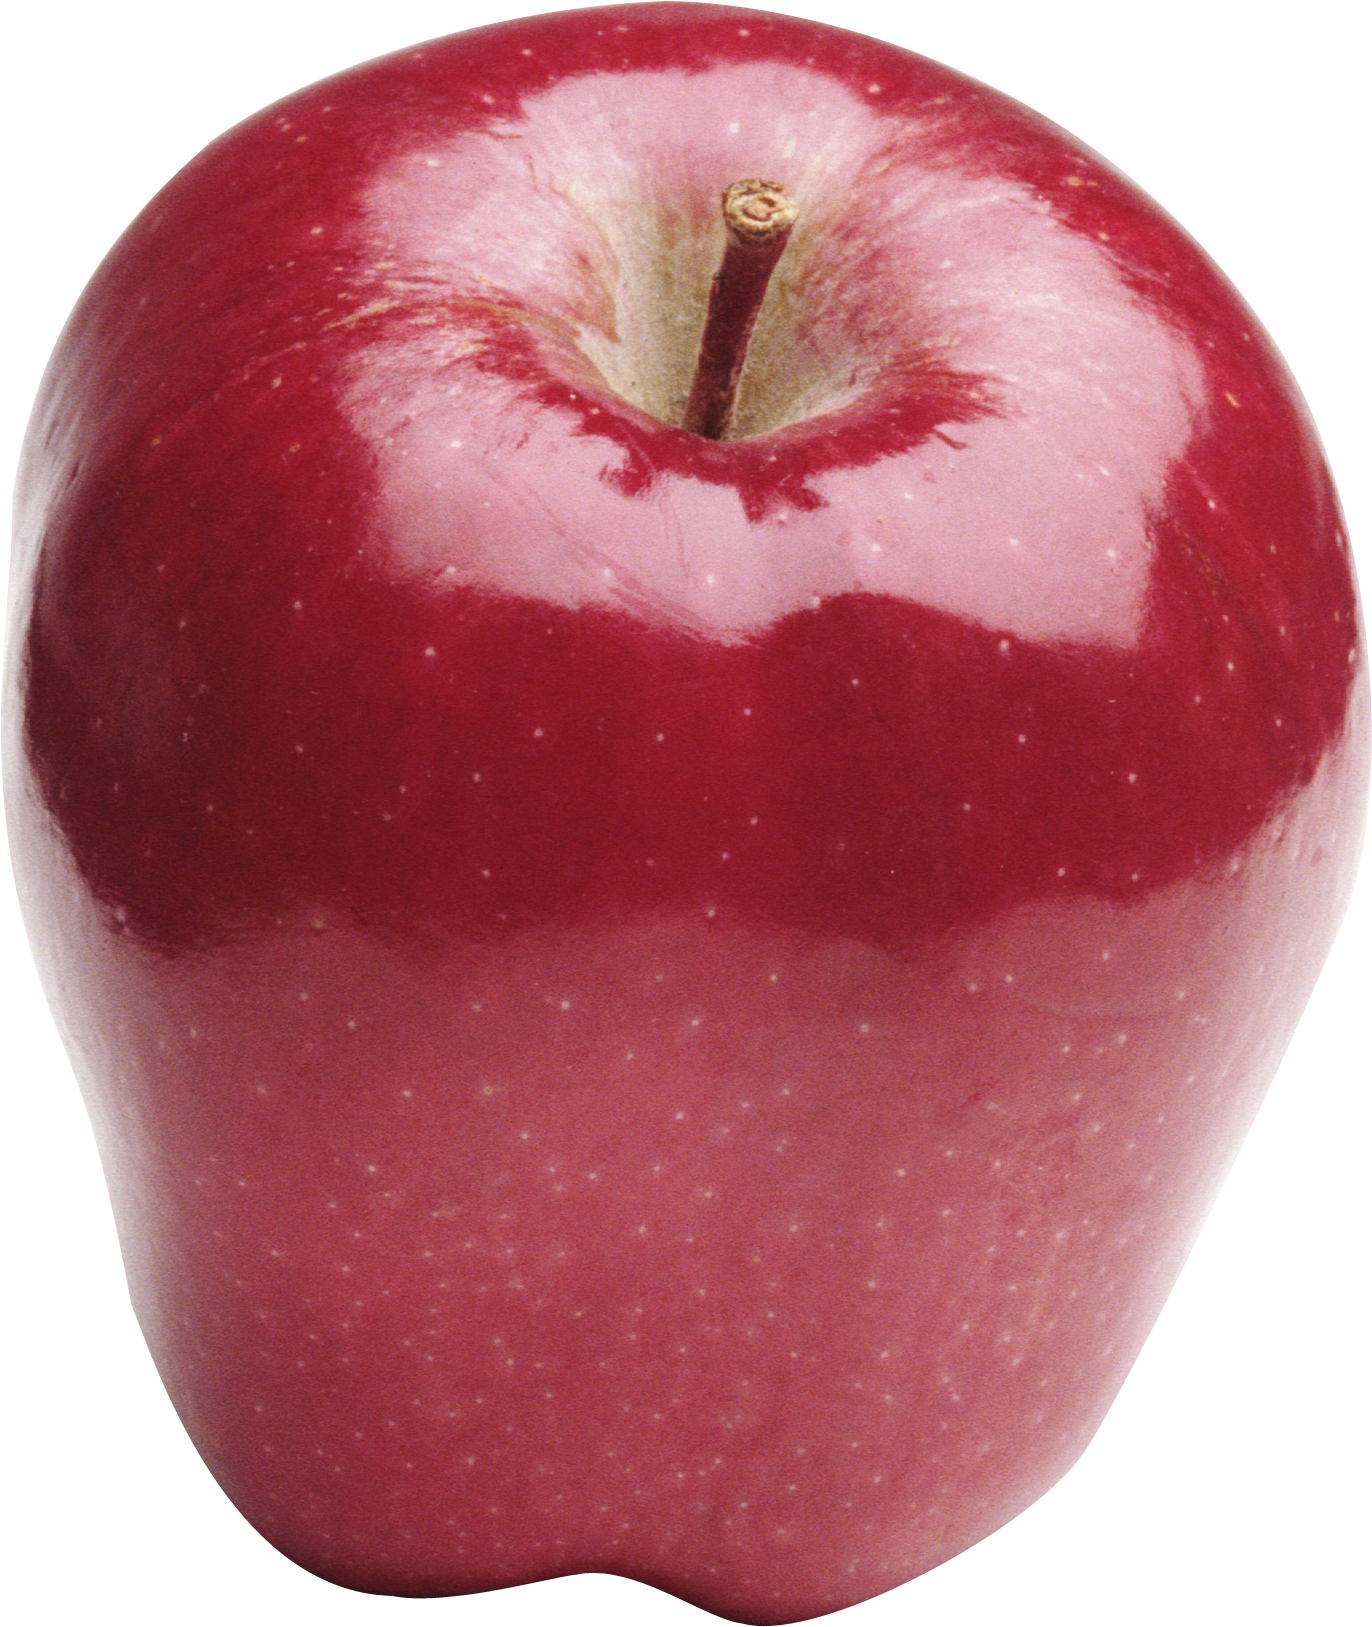 Red Apple S Red Apple Apple Red Delicious Apples